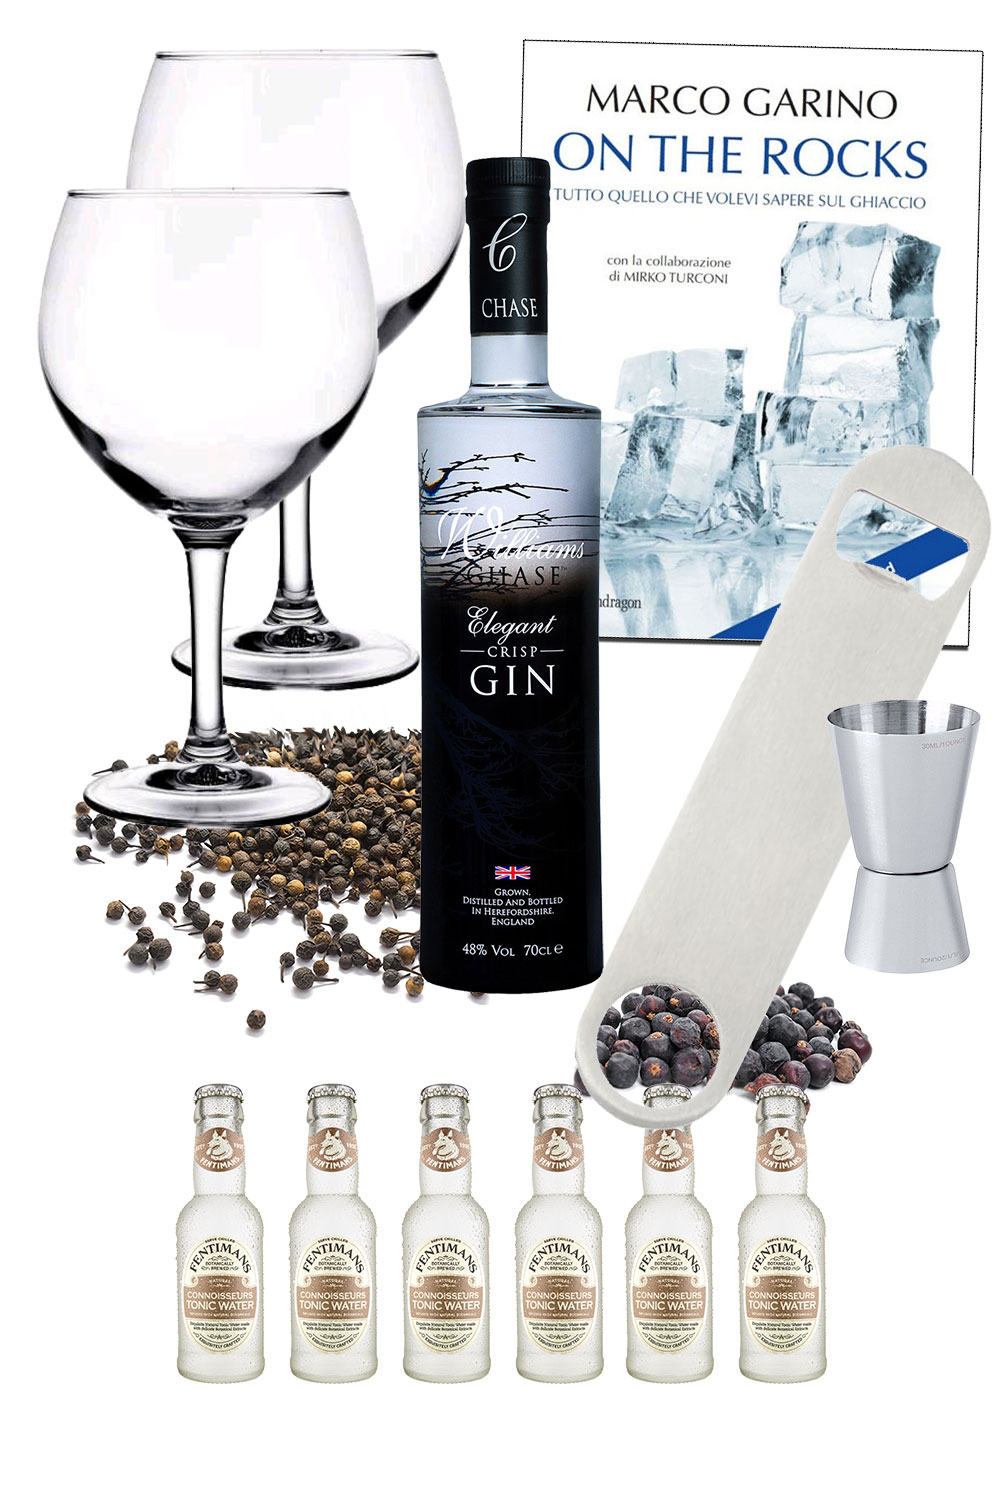 Williams Chase Elegant 48 – Gin Genie